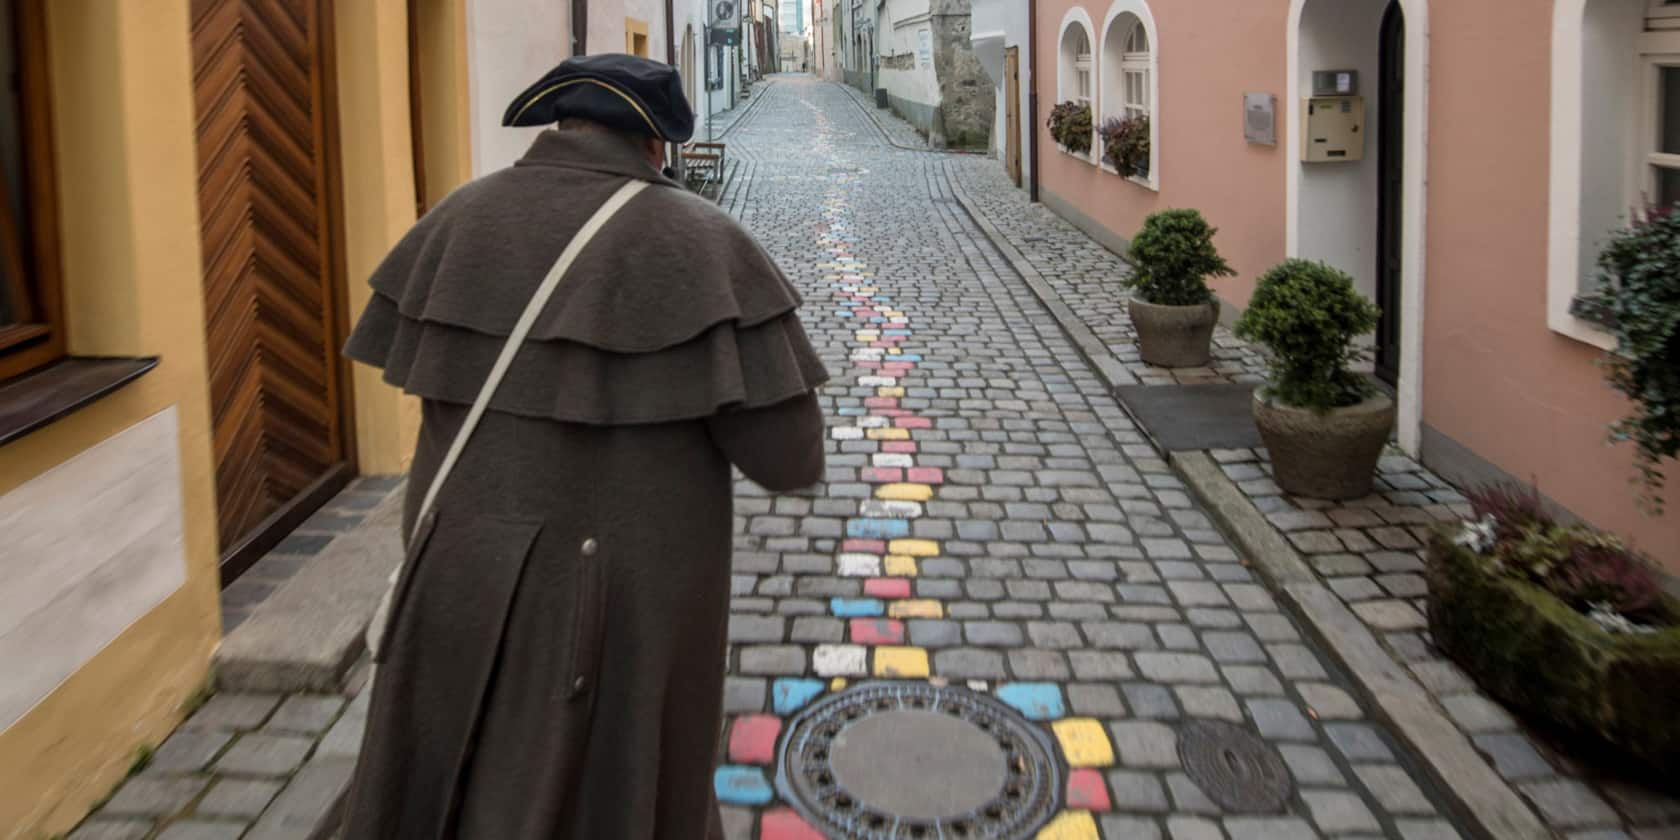 A man in a hat walks down a narrow, cobblestone street